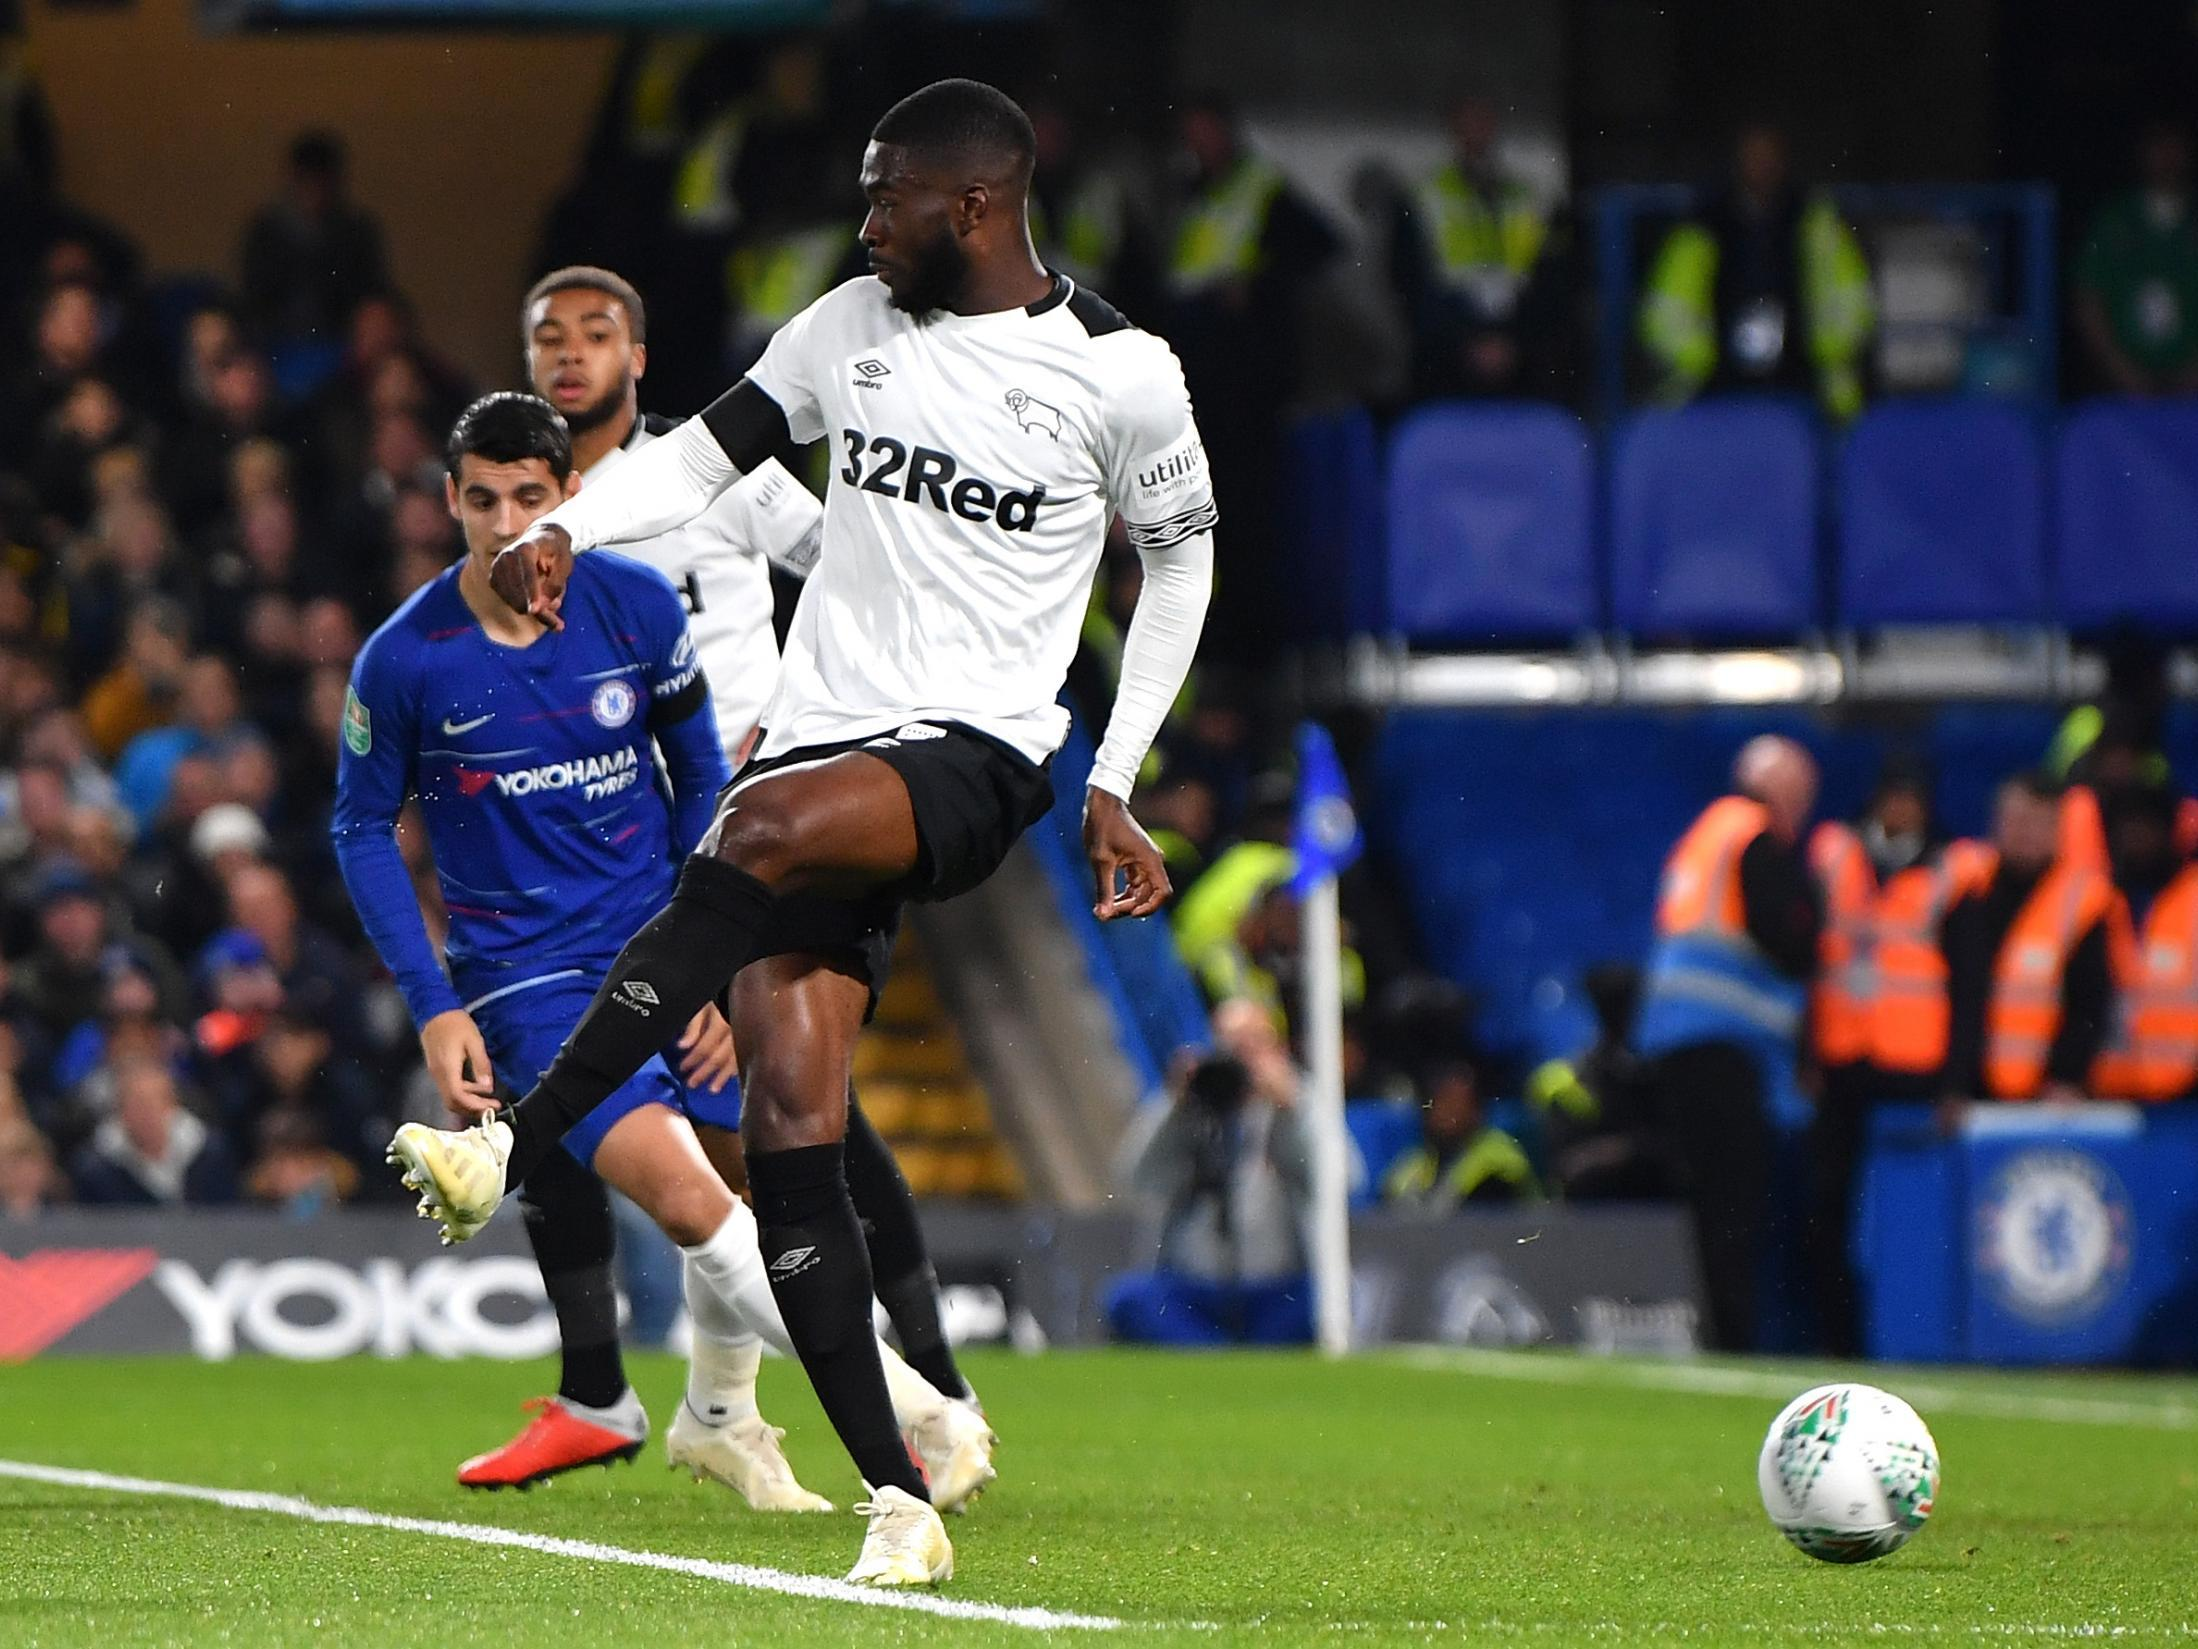 Gianfranco Zola proud of Chelsea loanee Fikayo Tomori for spirited display in Derby defeat